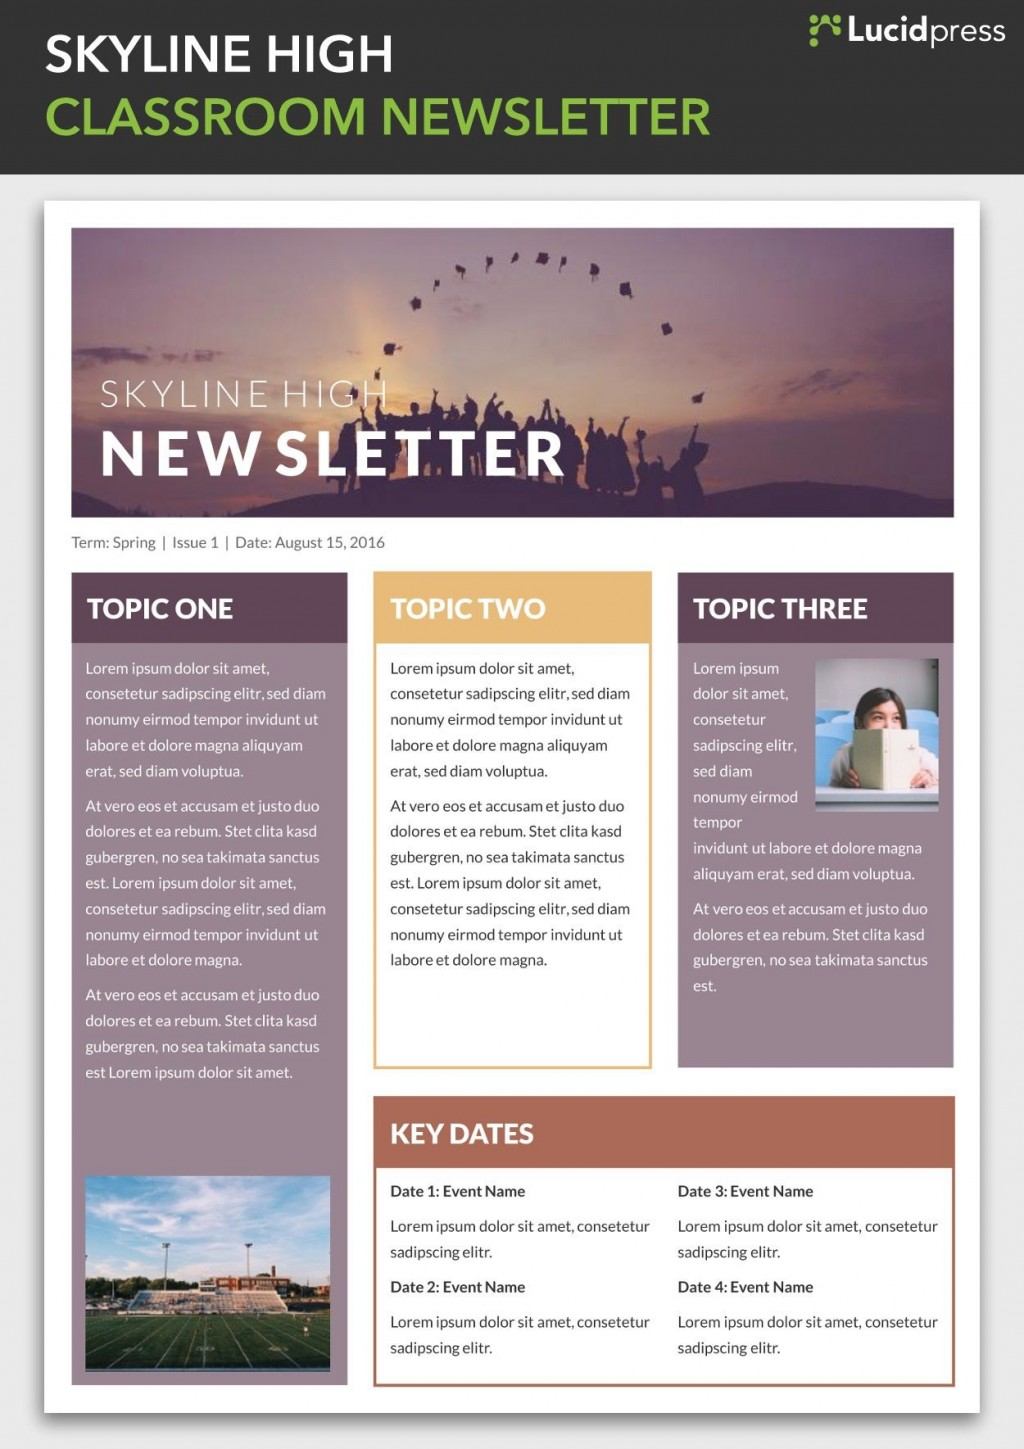 004 Simple School Newsletter Template Free Photo  Publisher Editable CounselorLarge